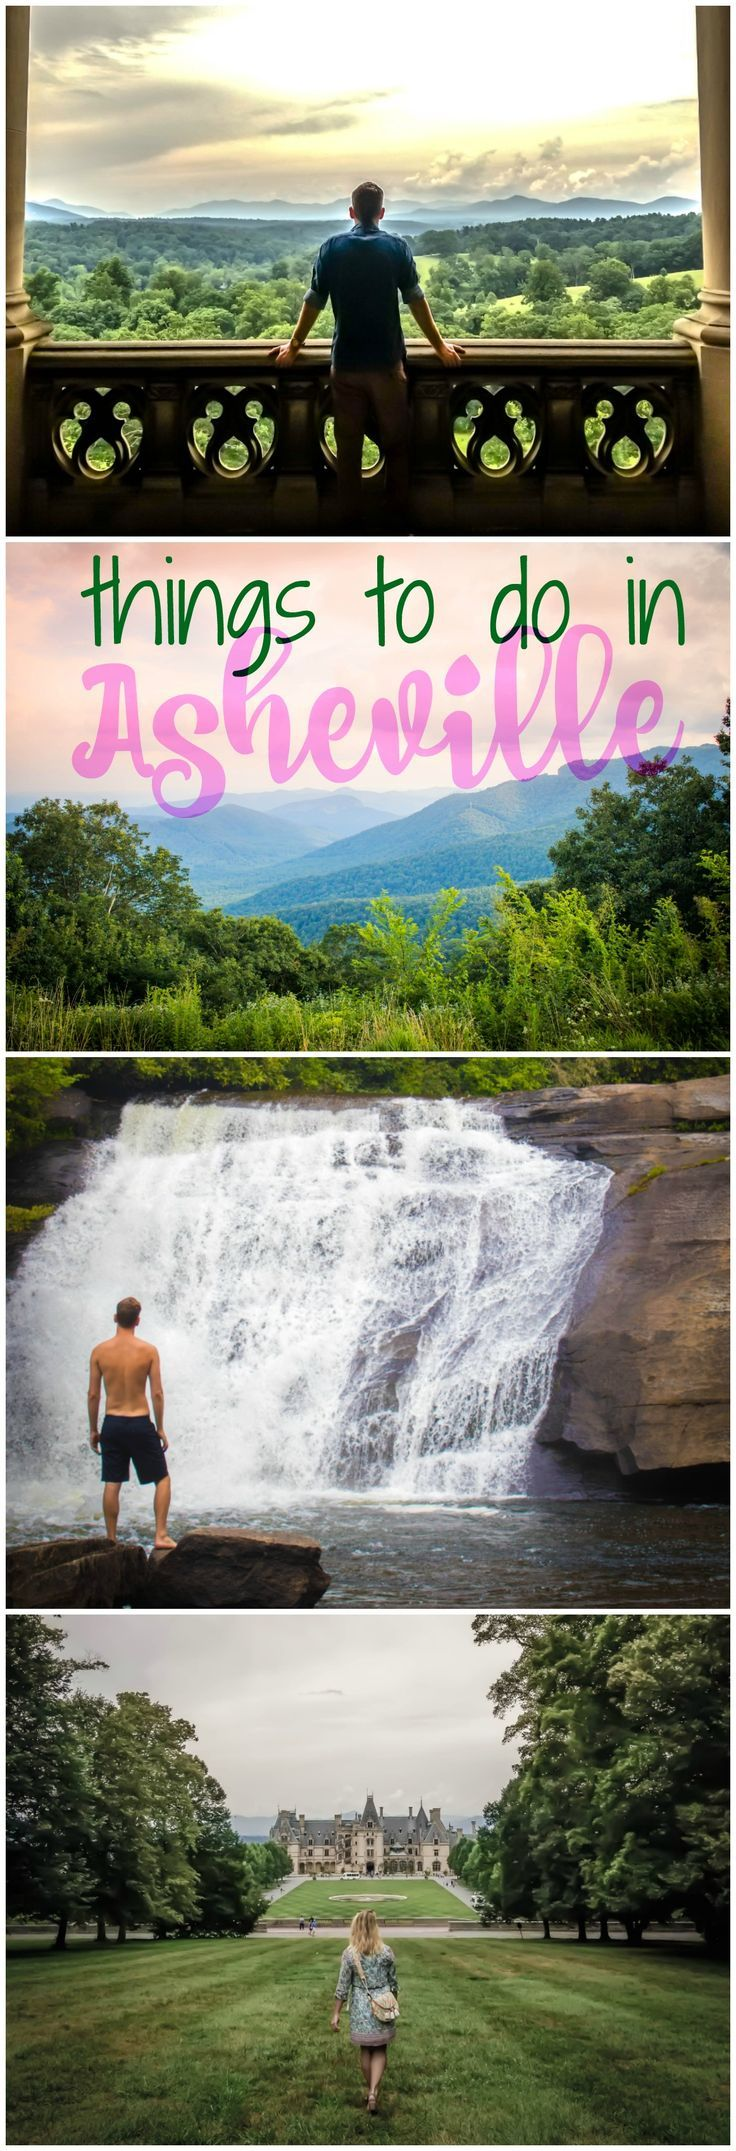 The ultimate list of things to do in Asheville.